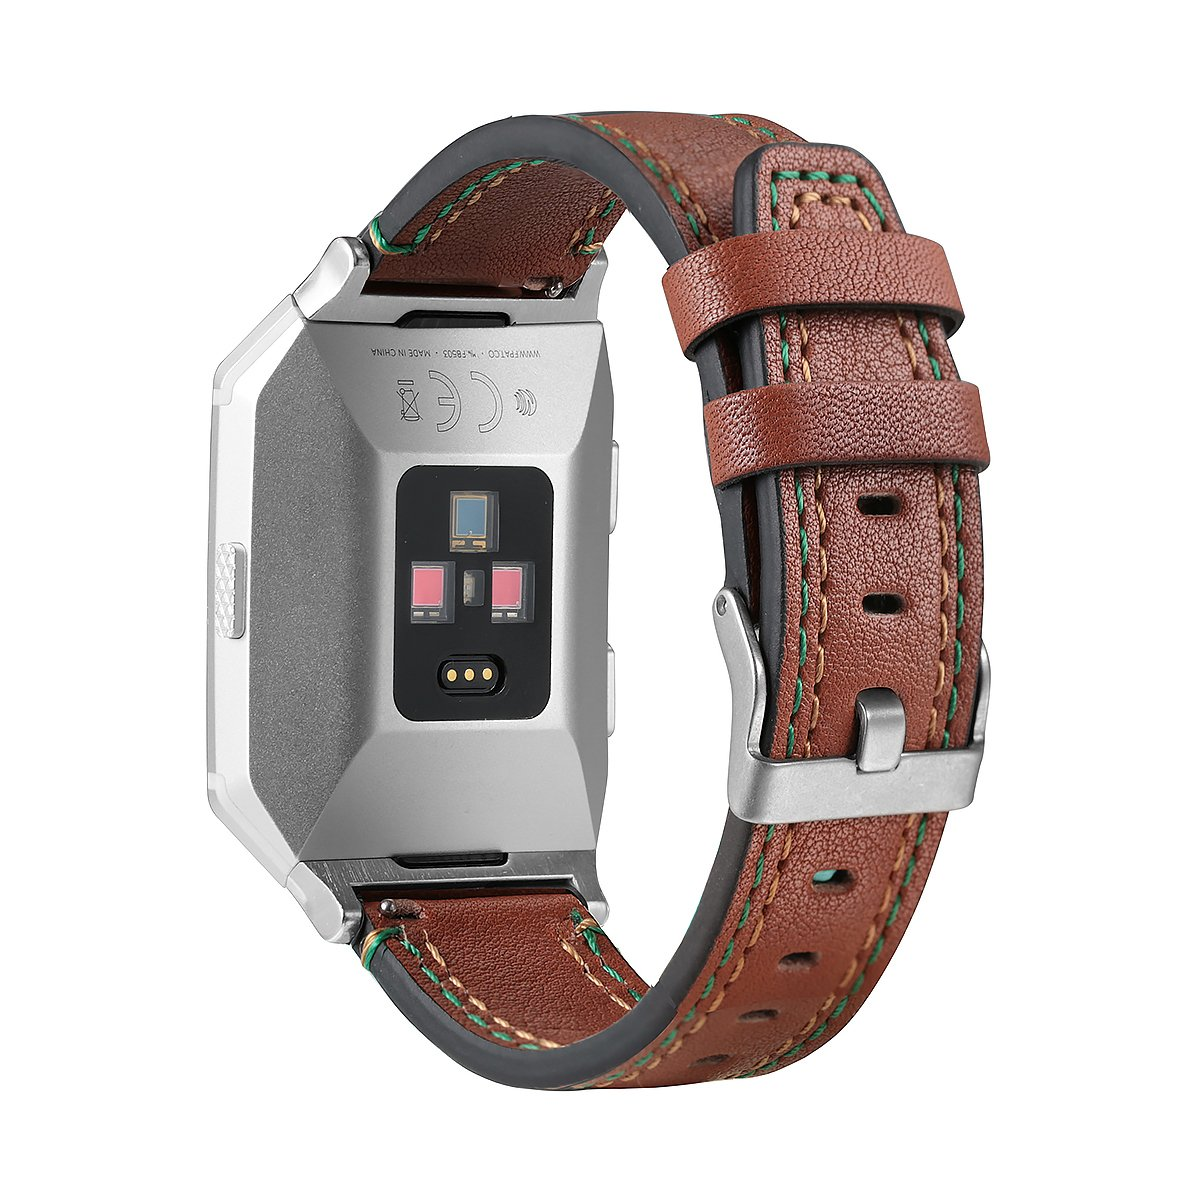 bayite Leather Bands Compatible Fitbit Ionic, Genuine Leather Replacement Accessories Straps Wristband Women Men, Coffee Brown